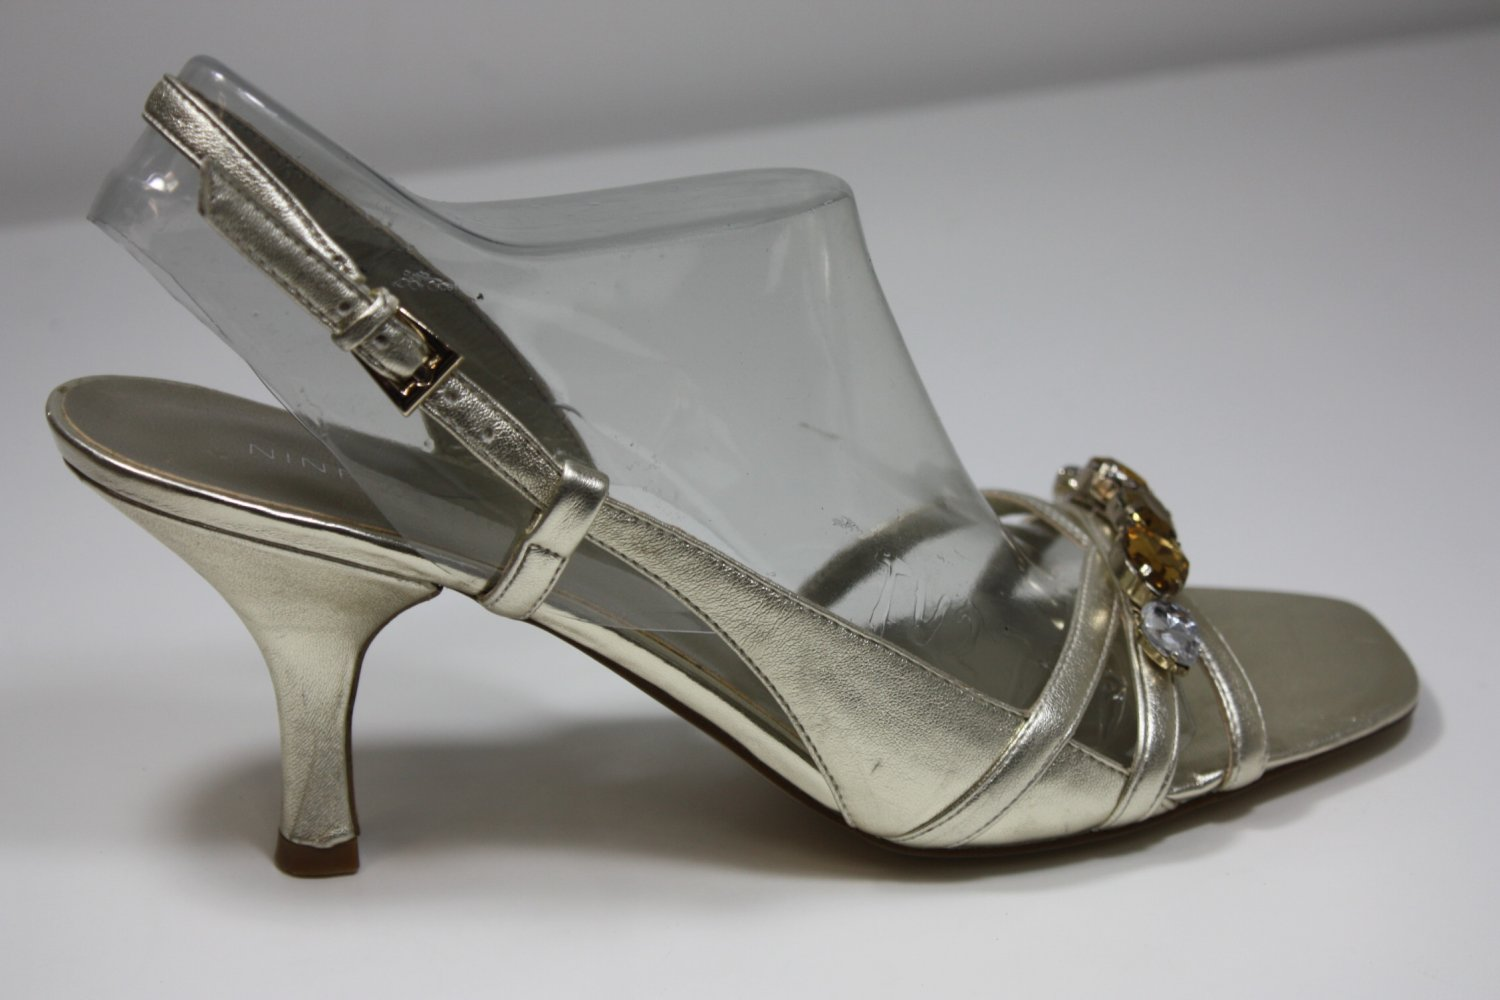 Nine West Kristian Pumps Gold Shoes US 8 $79